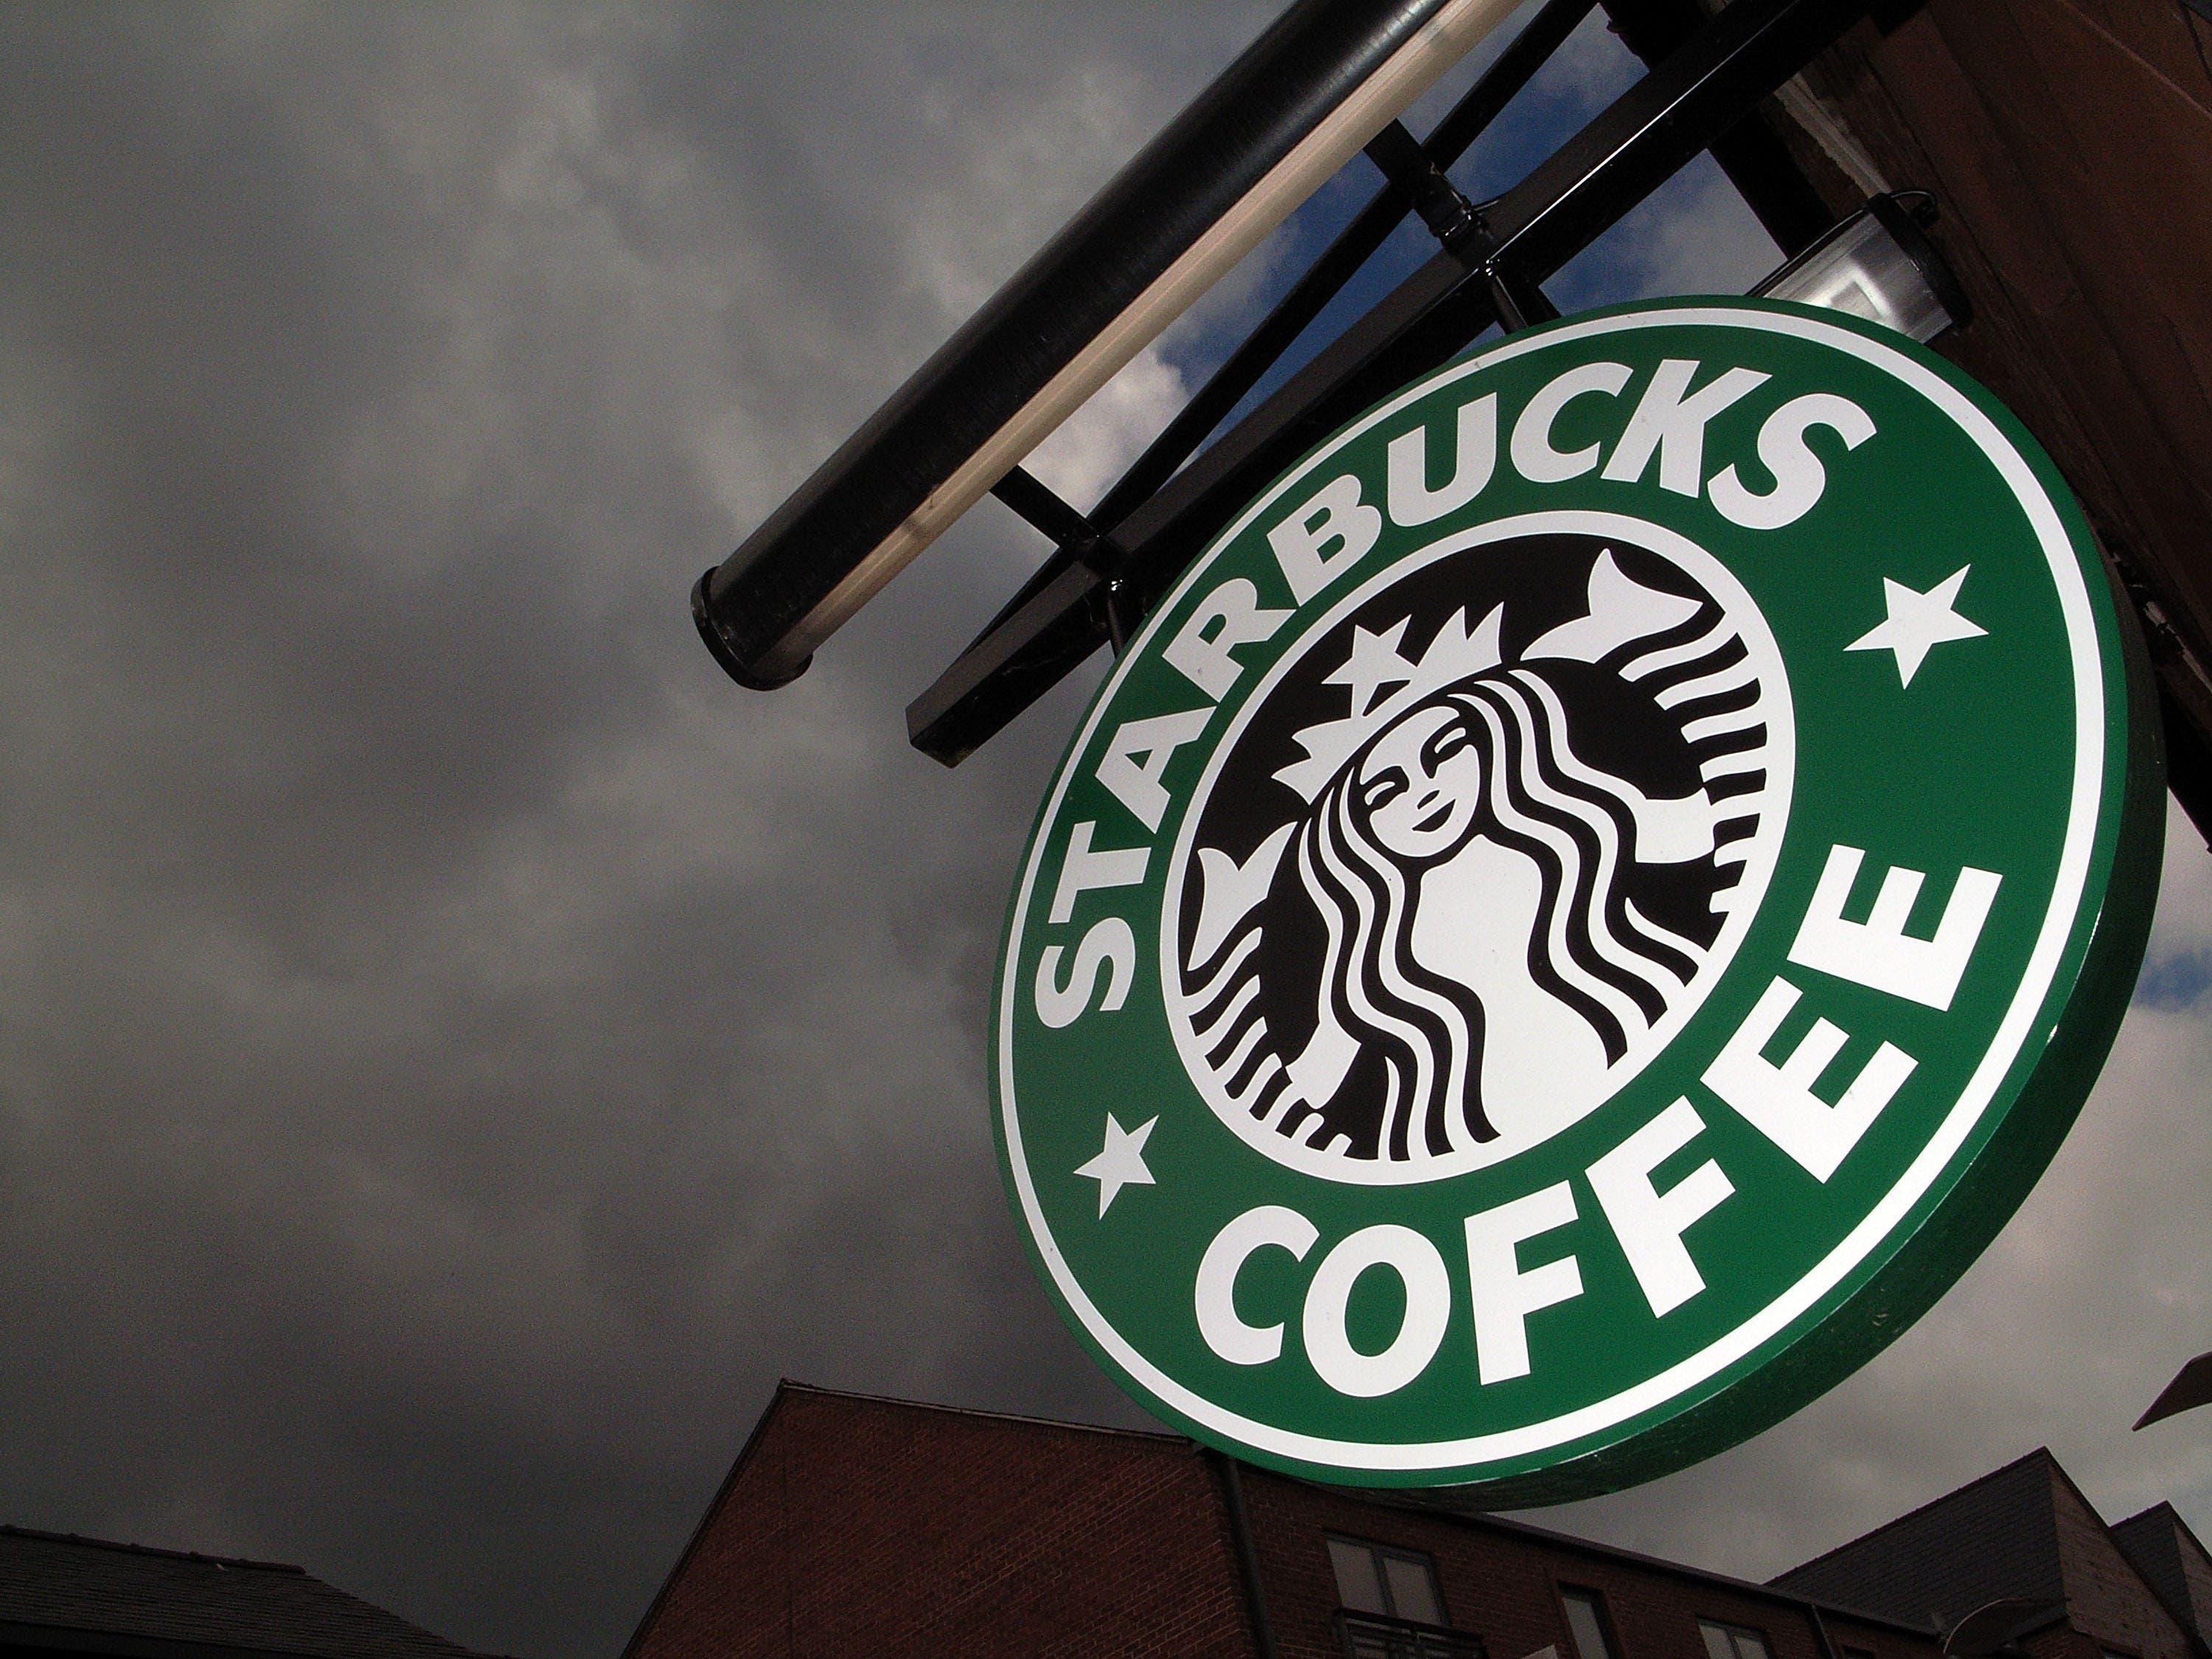 Starbucks on a declining popularity slope in the Mideast with its long-alleged association with the Zionist movement.